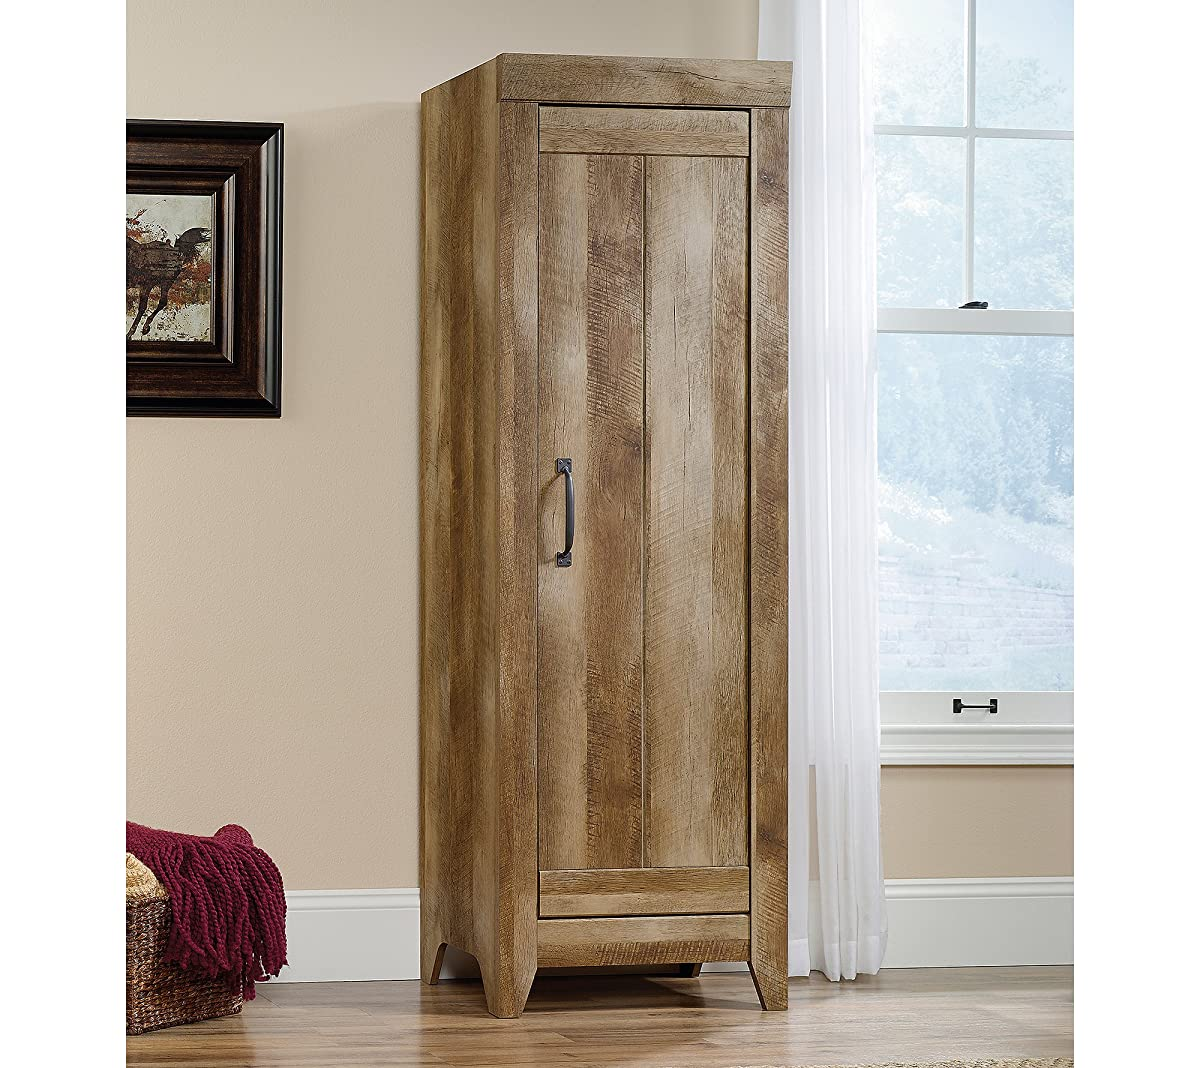 Sauder 418137 Storage Cabinet, Furniture Adept Narrow, Craftsman Oak